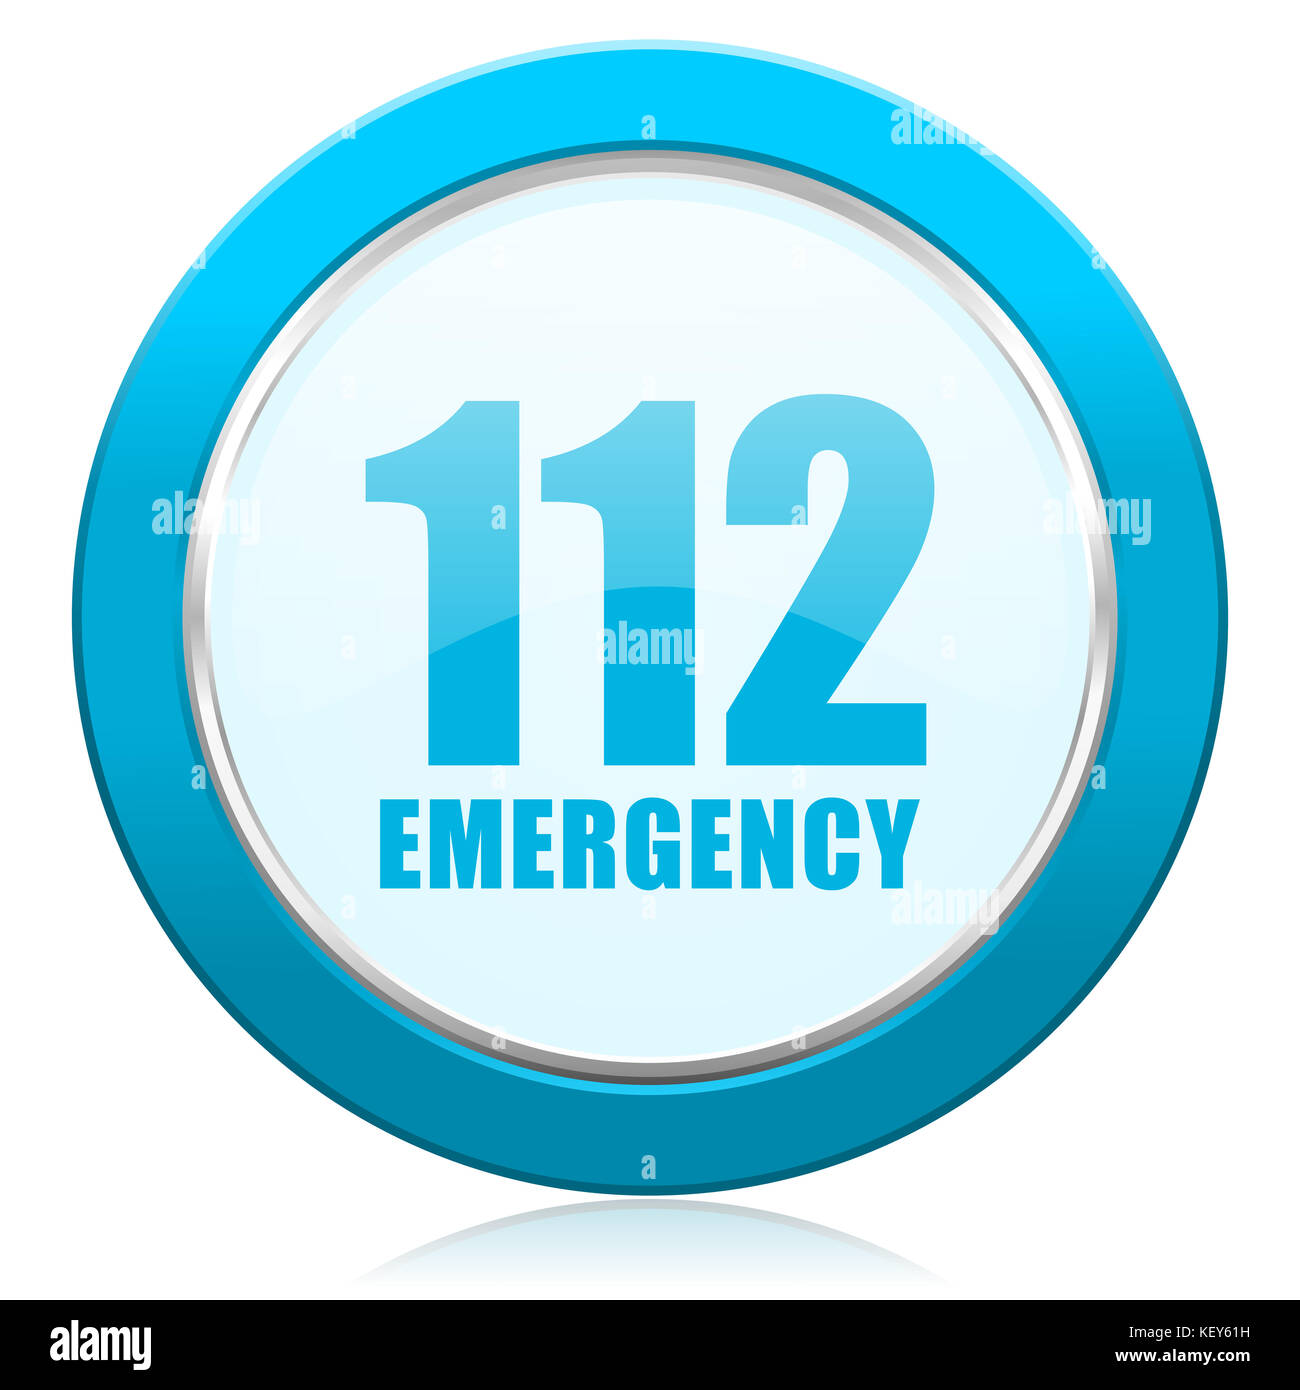 Number emergency 112 blue chrome silver metallic border web icon. Round button for internet and mobile phone application - Stock Image